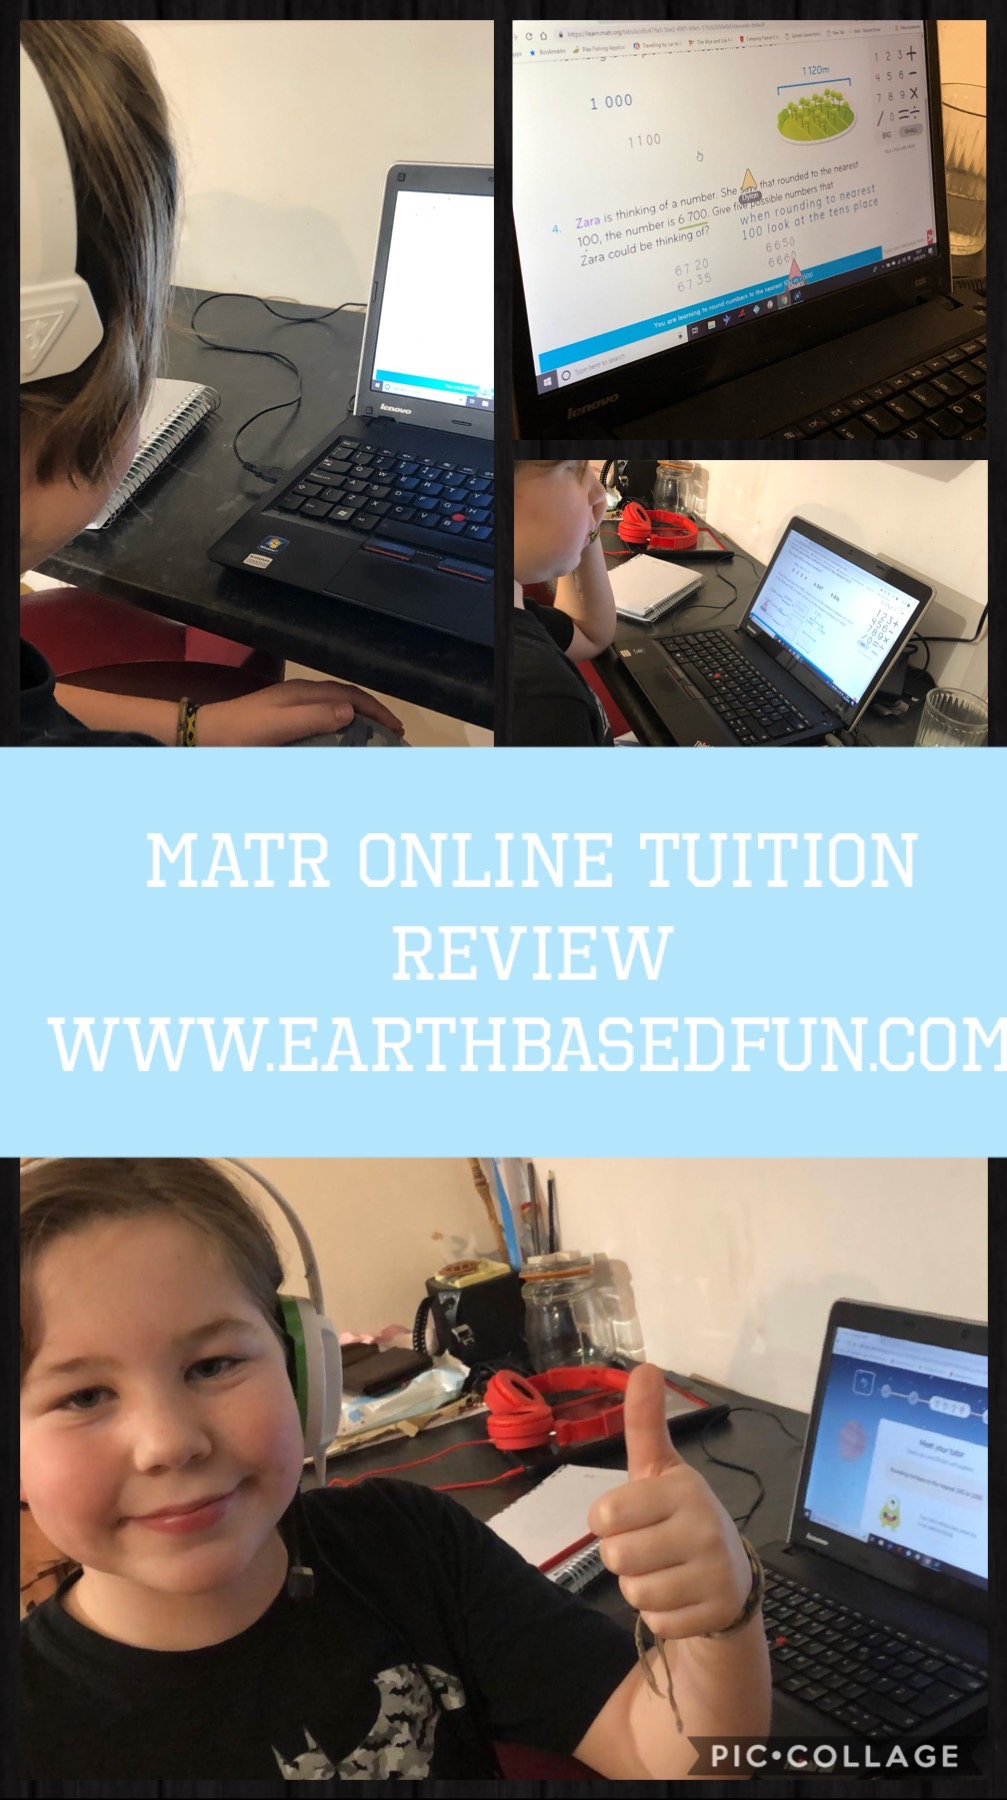 Review of a online one-to-one maths tuition program for children- MATR